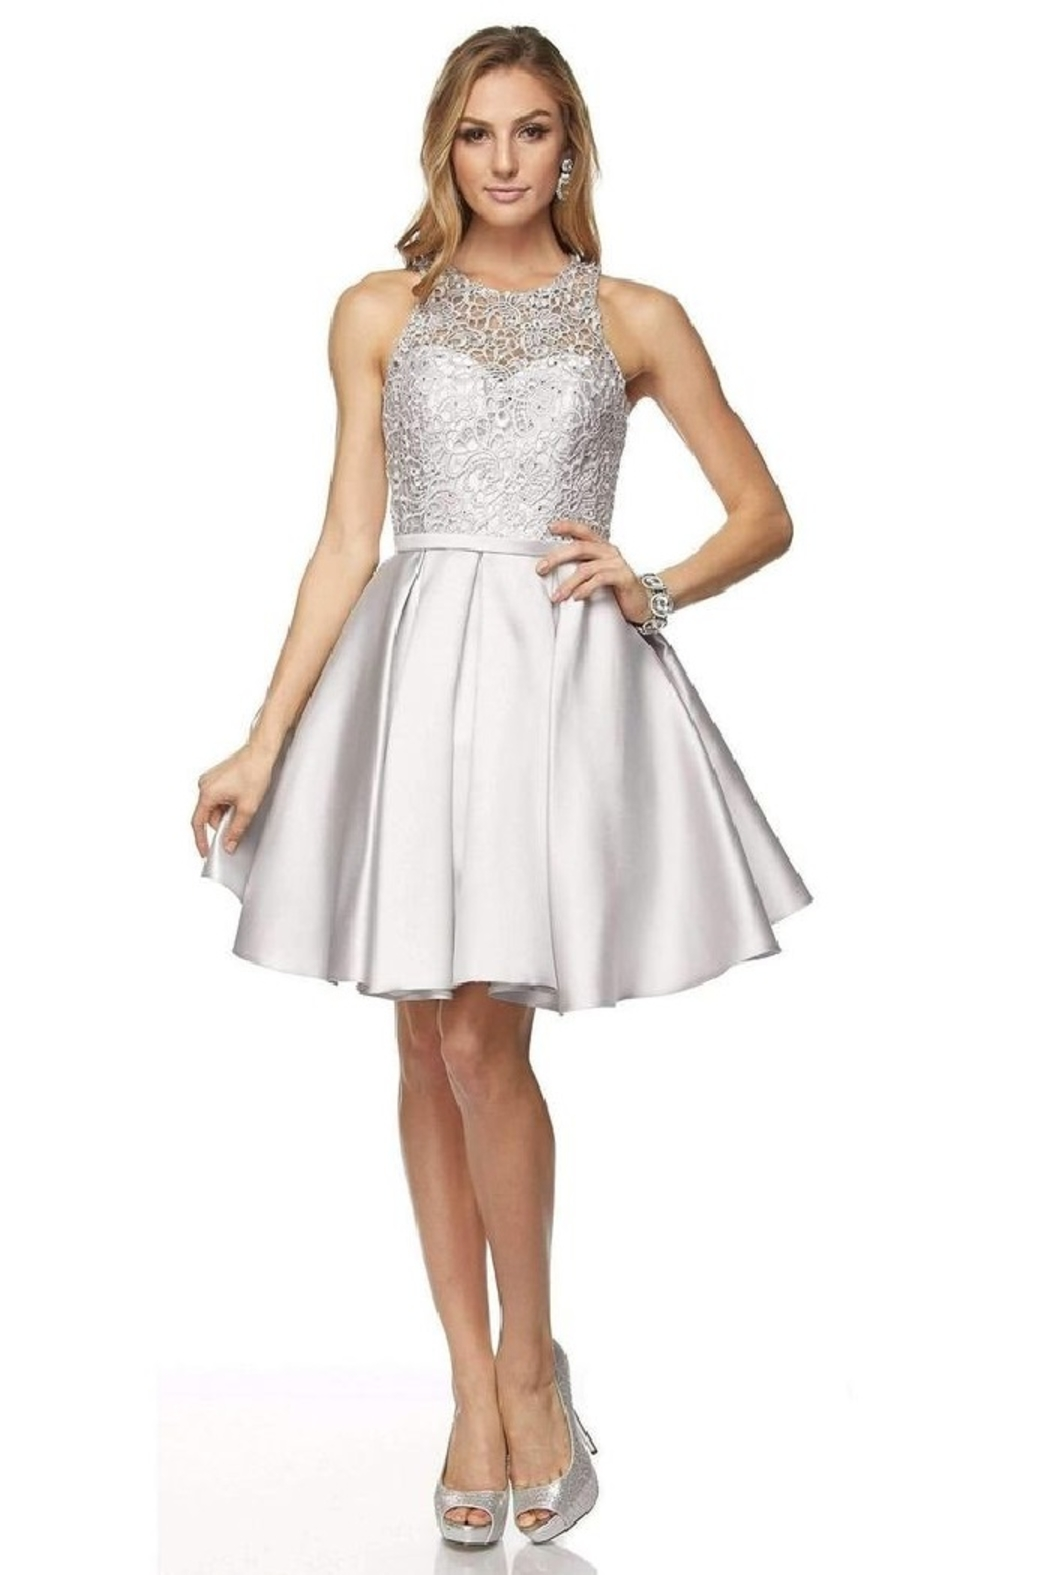 Juliet Silver Lace Formal Short Dress - Main Image